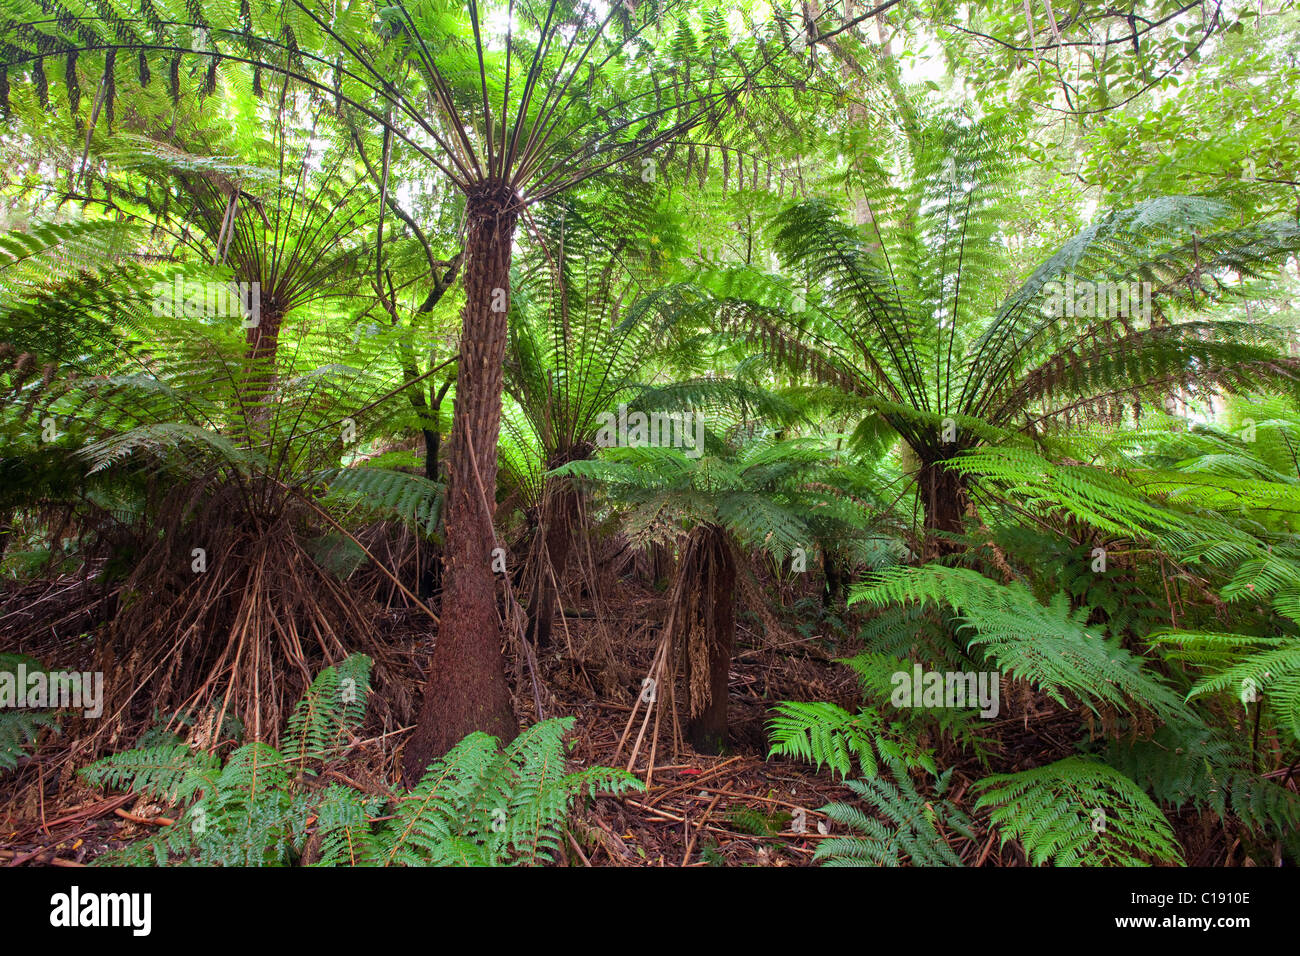 Forêt tropicale, Great Otway National Park, Victoria, Australie Photo Stock